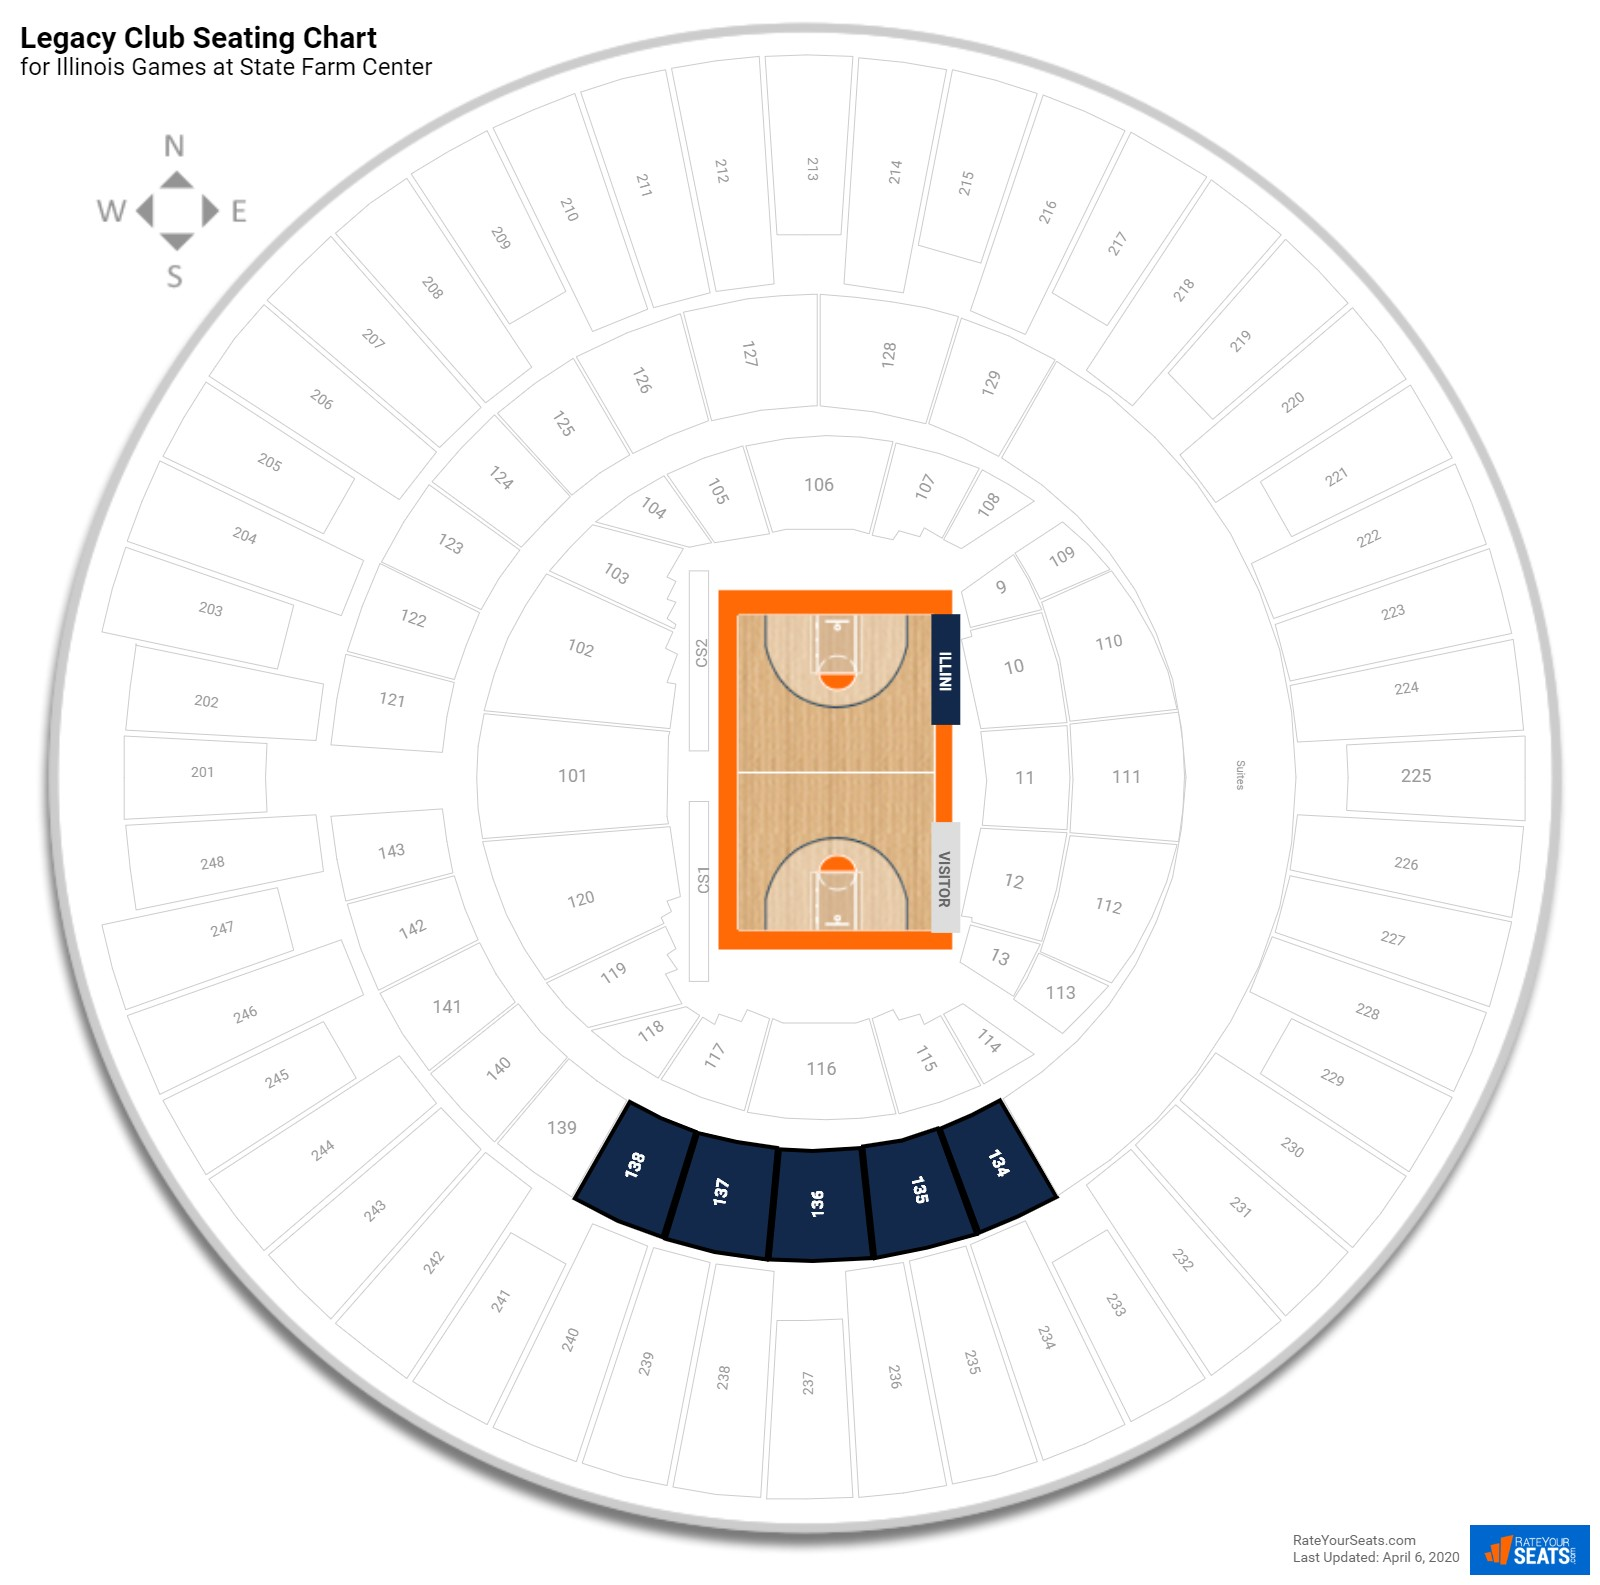 State Farm Center Legacy Club seating chart